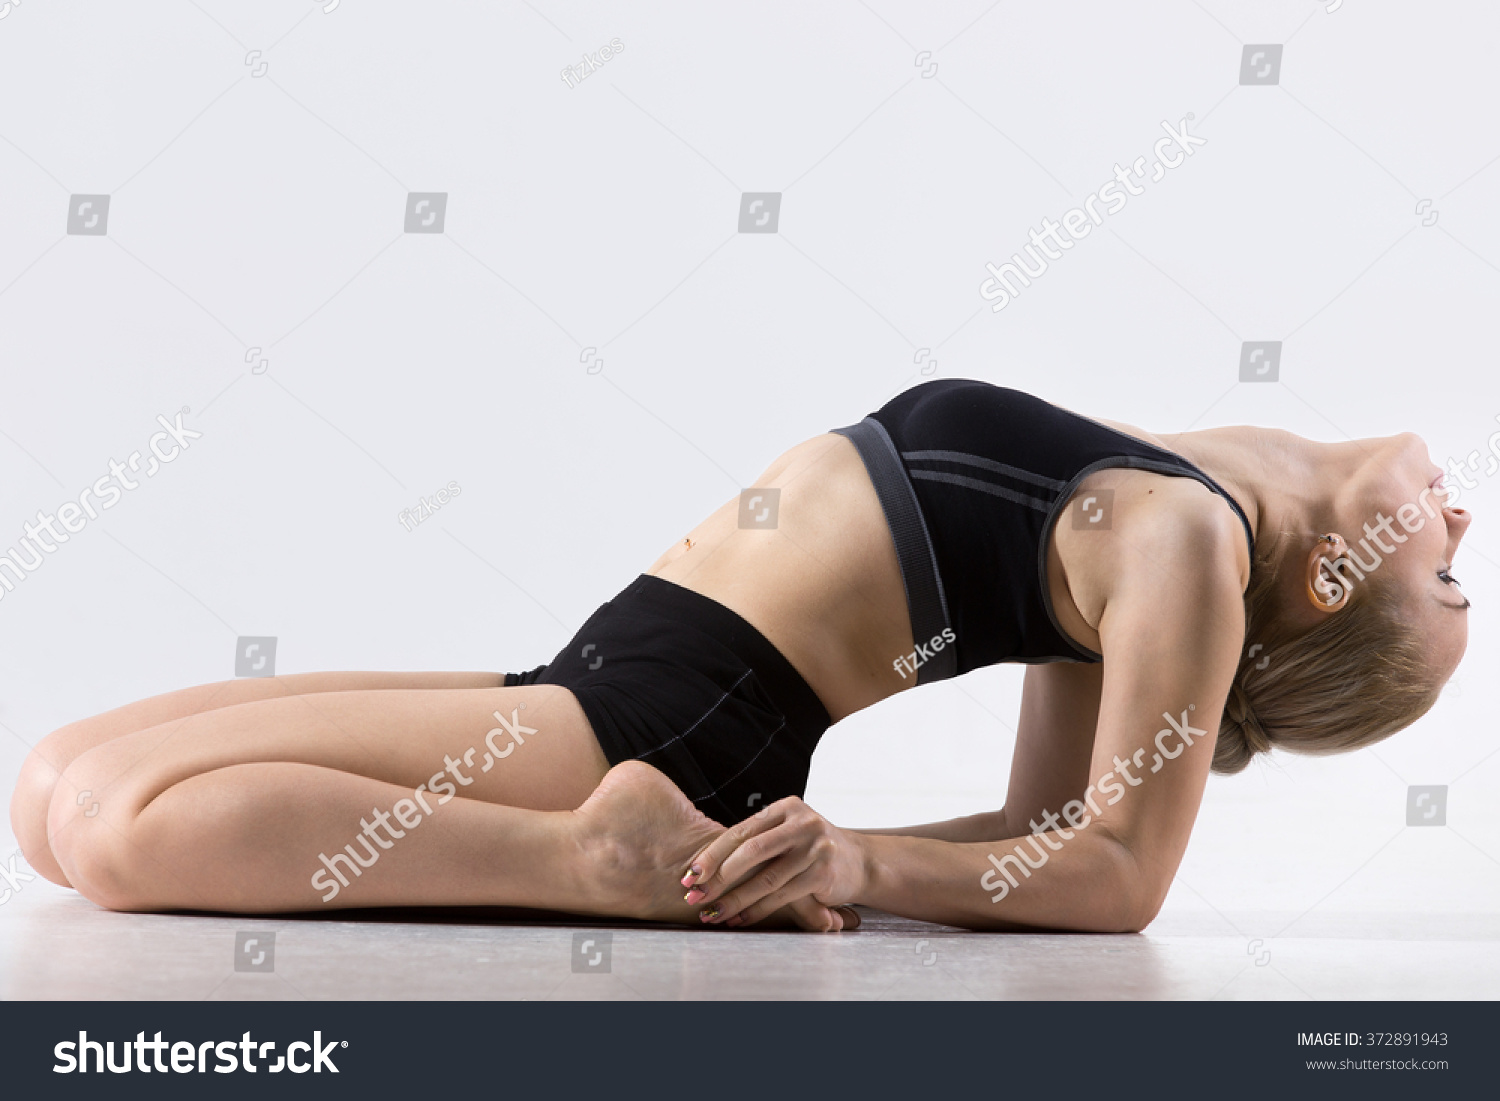 Sporty beautiful young woman practicing yoga doing Reclining Hero Pose - variation of Virasana or : reclining lotus position - islam-shia.org